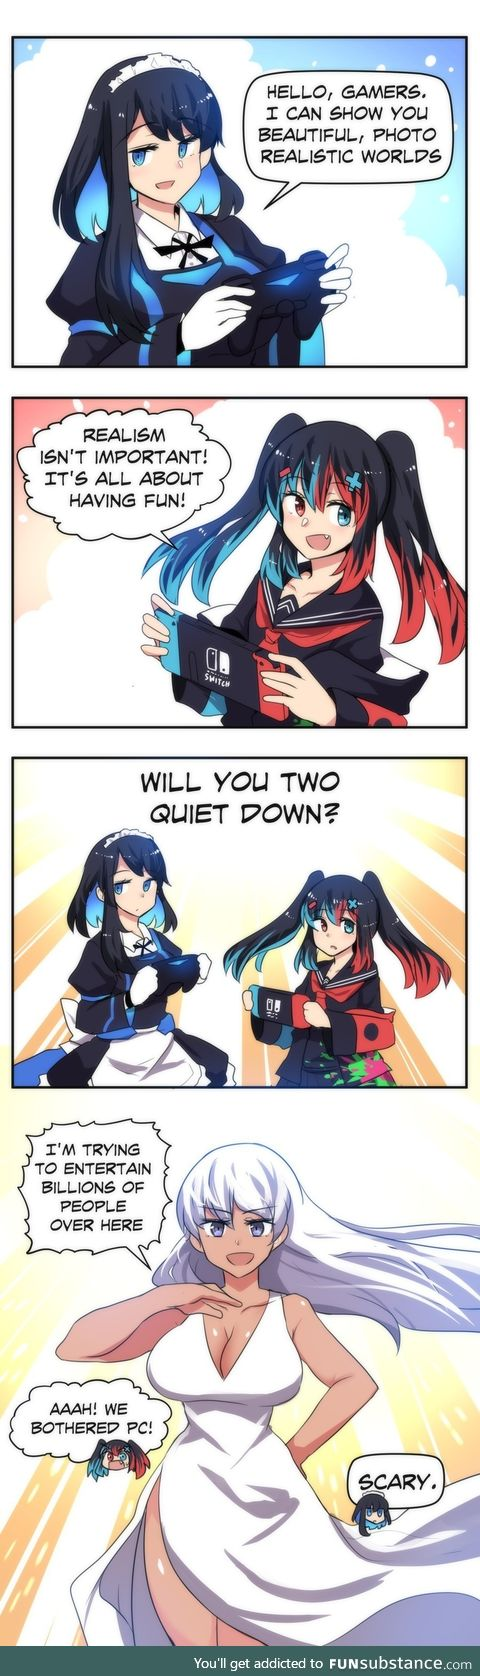 Switch-Chan & Playstation-Chan meet a scary challenger